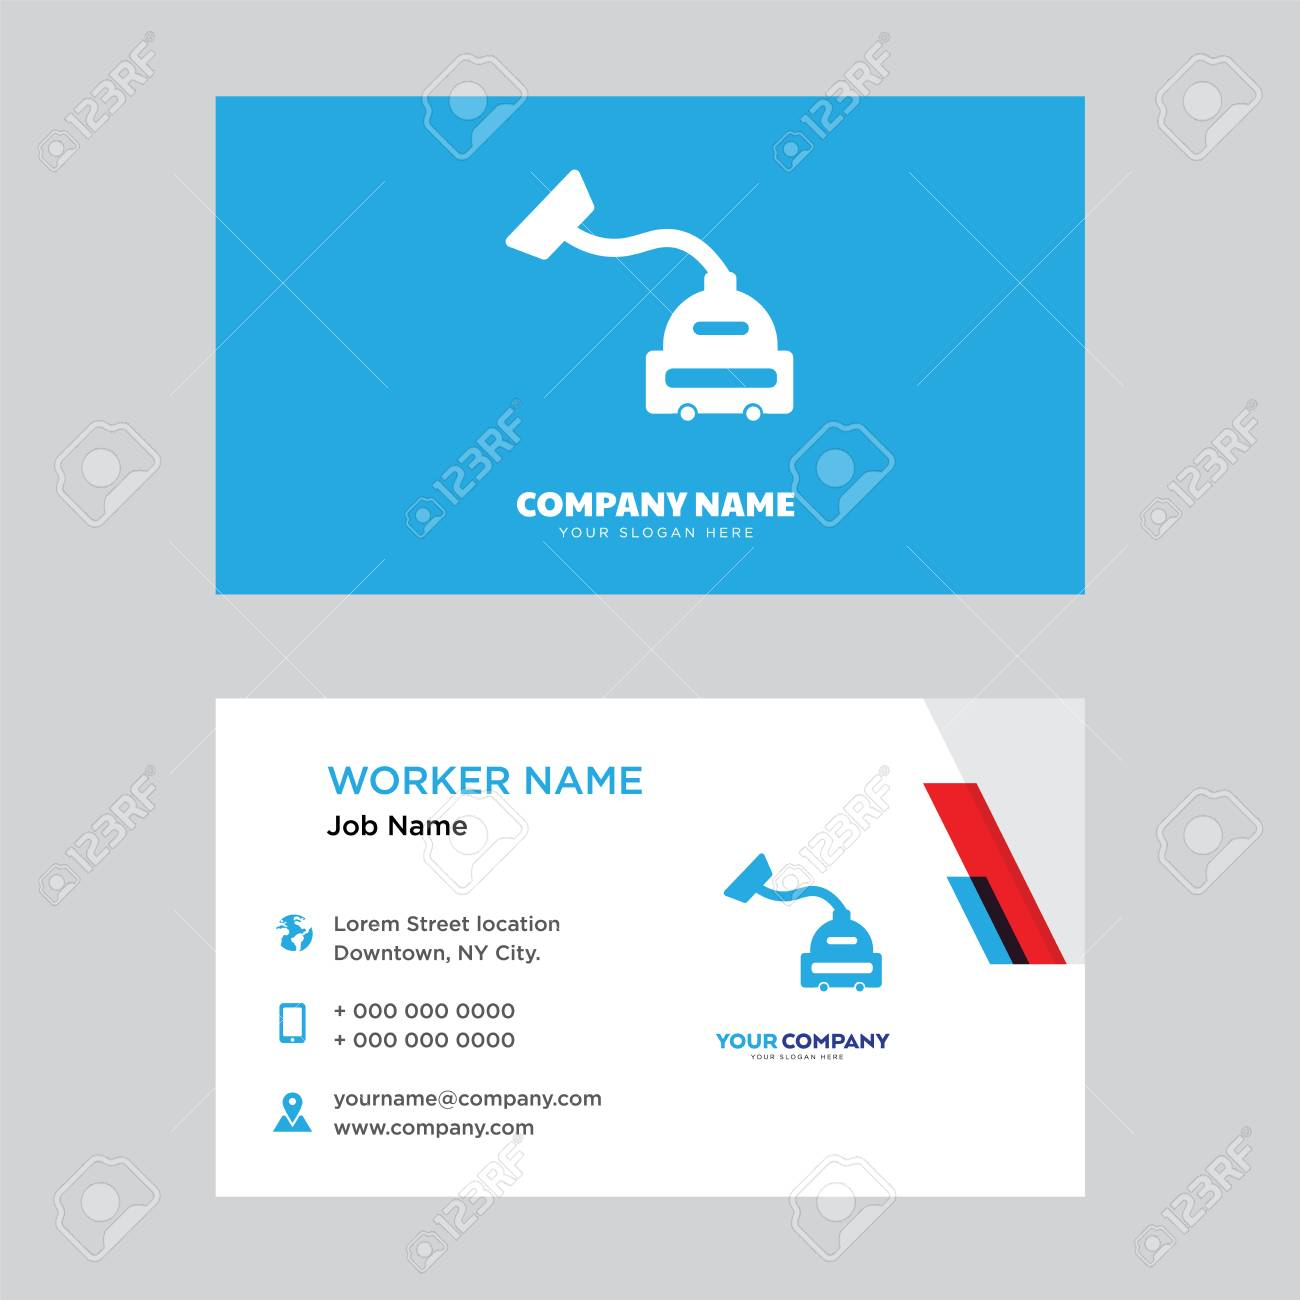 Vacuum cleaner business card design template, Visiting for your company, Modern horizontal identity Card Vector - 100837939